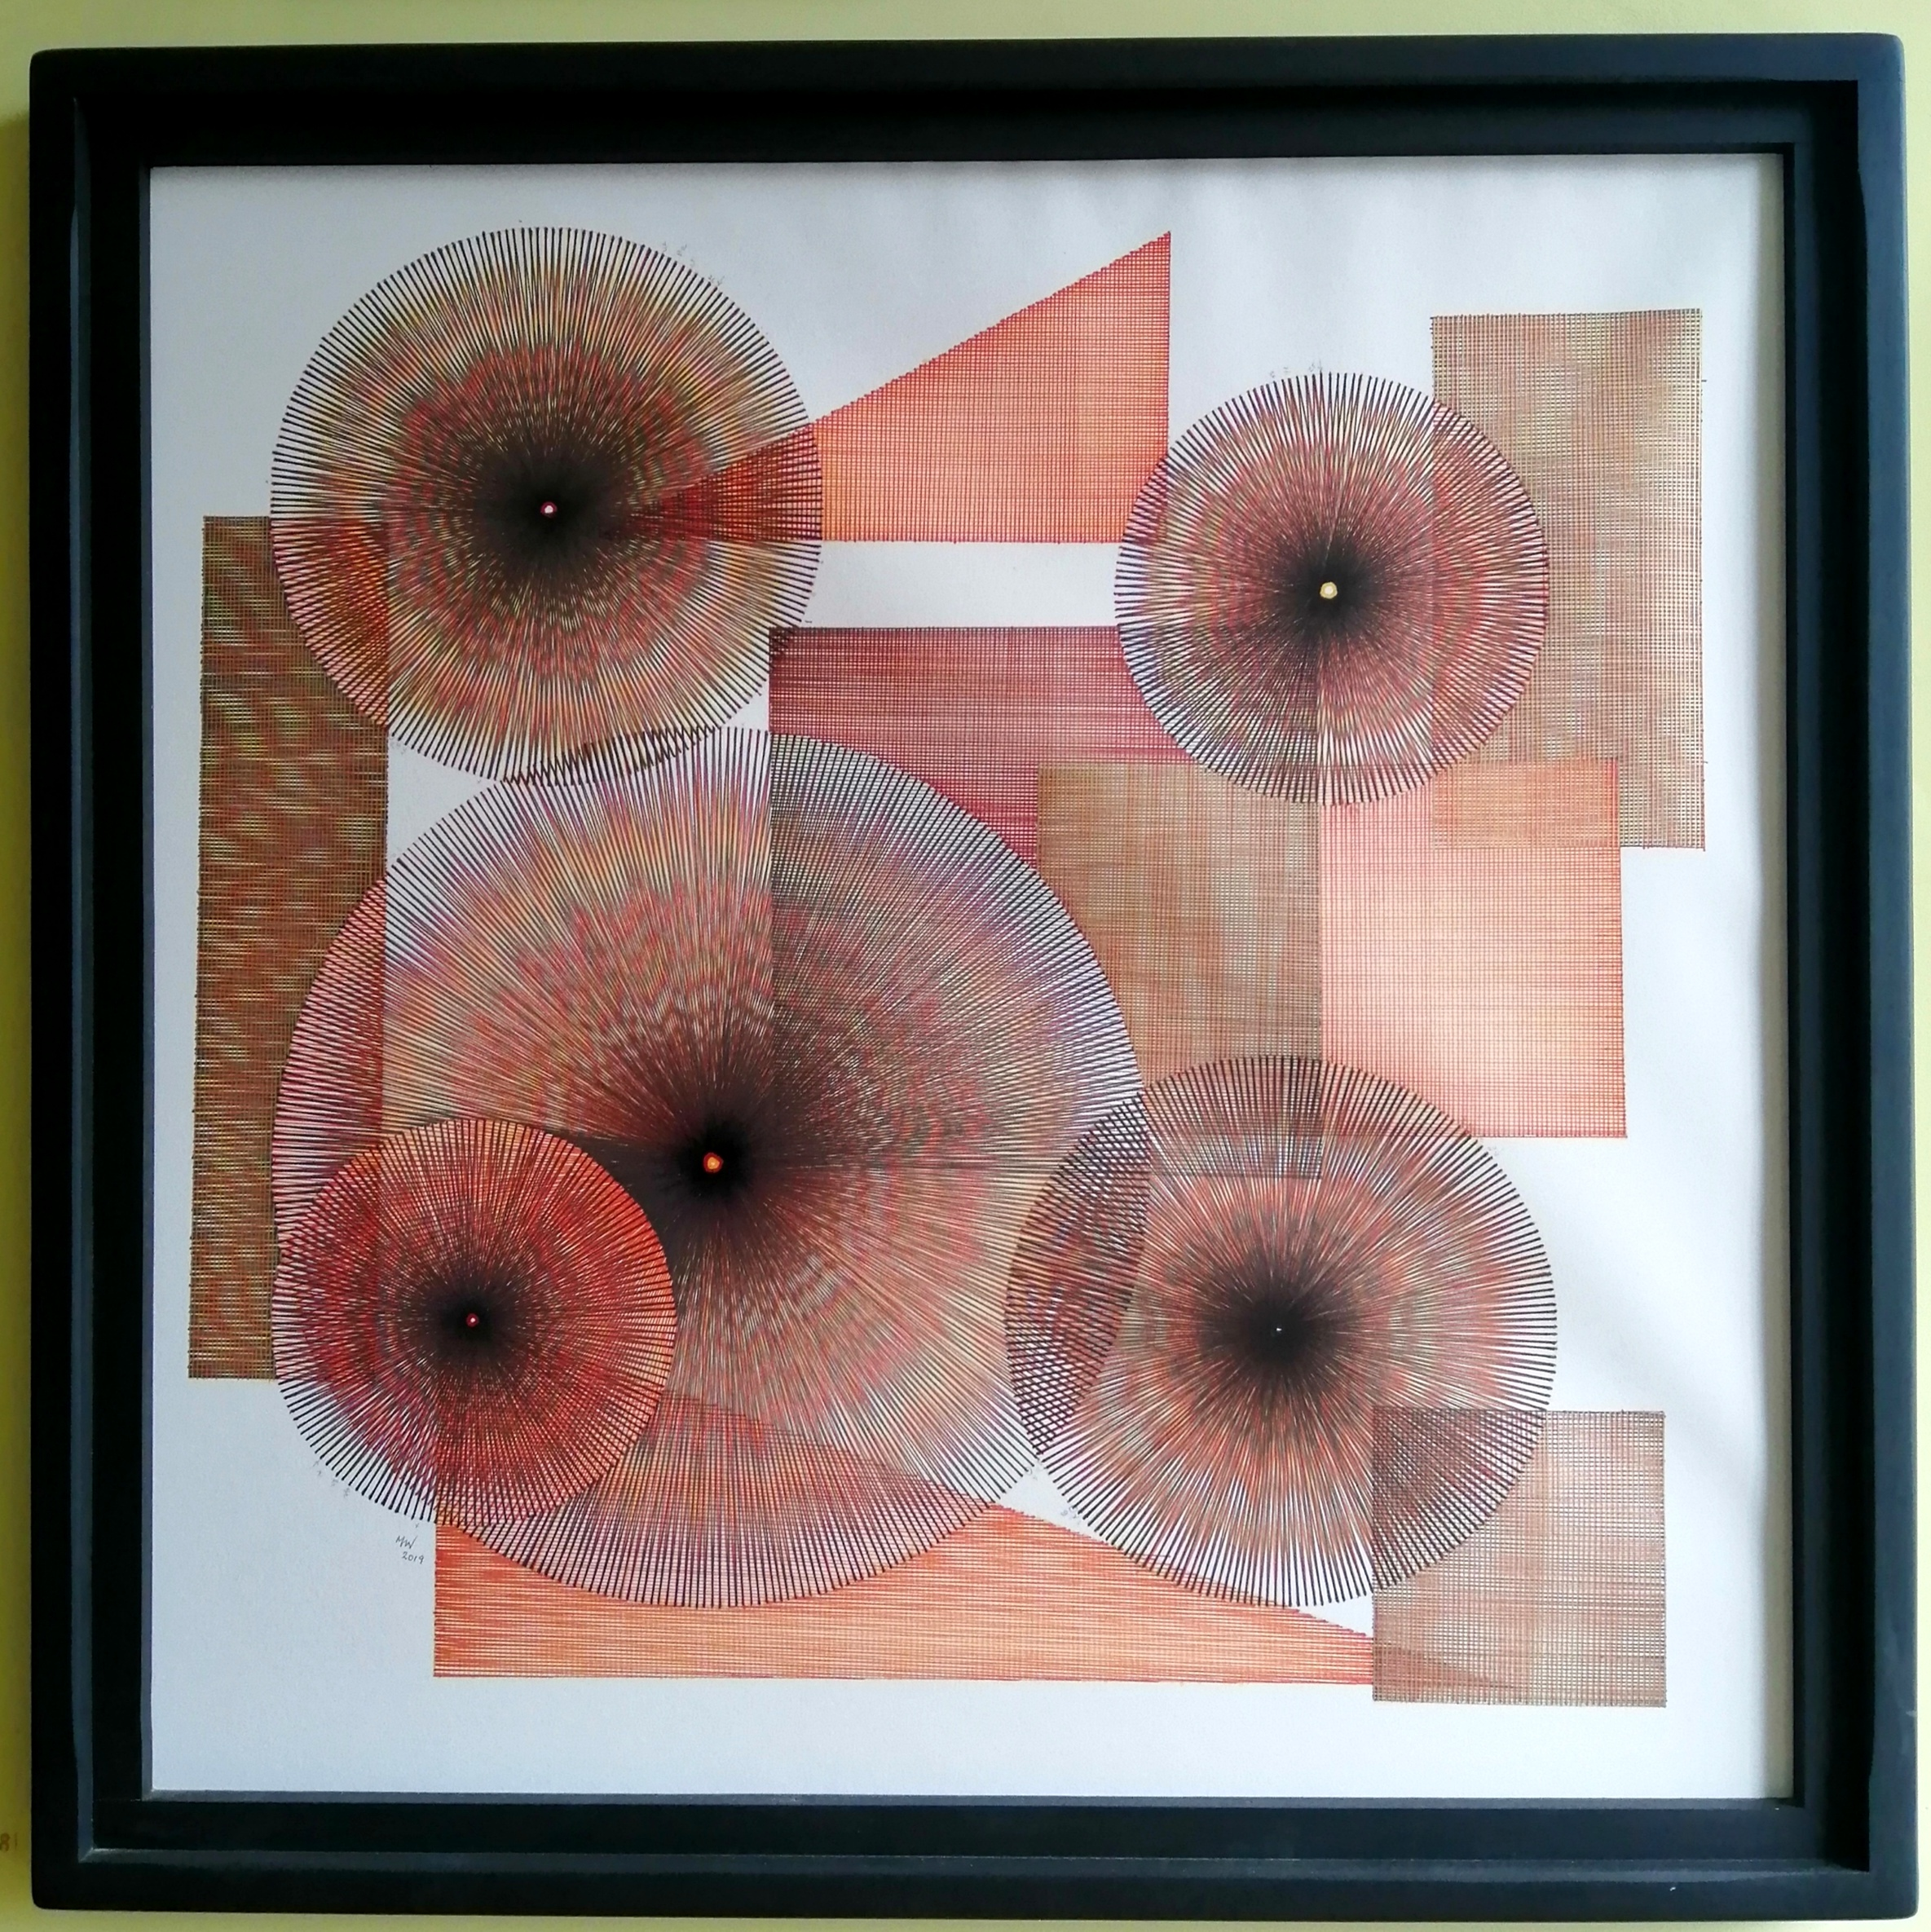 Maia Weerdmeester is an award-winning, Doncaster-based artist. She specializes in simple, repetitive